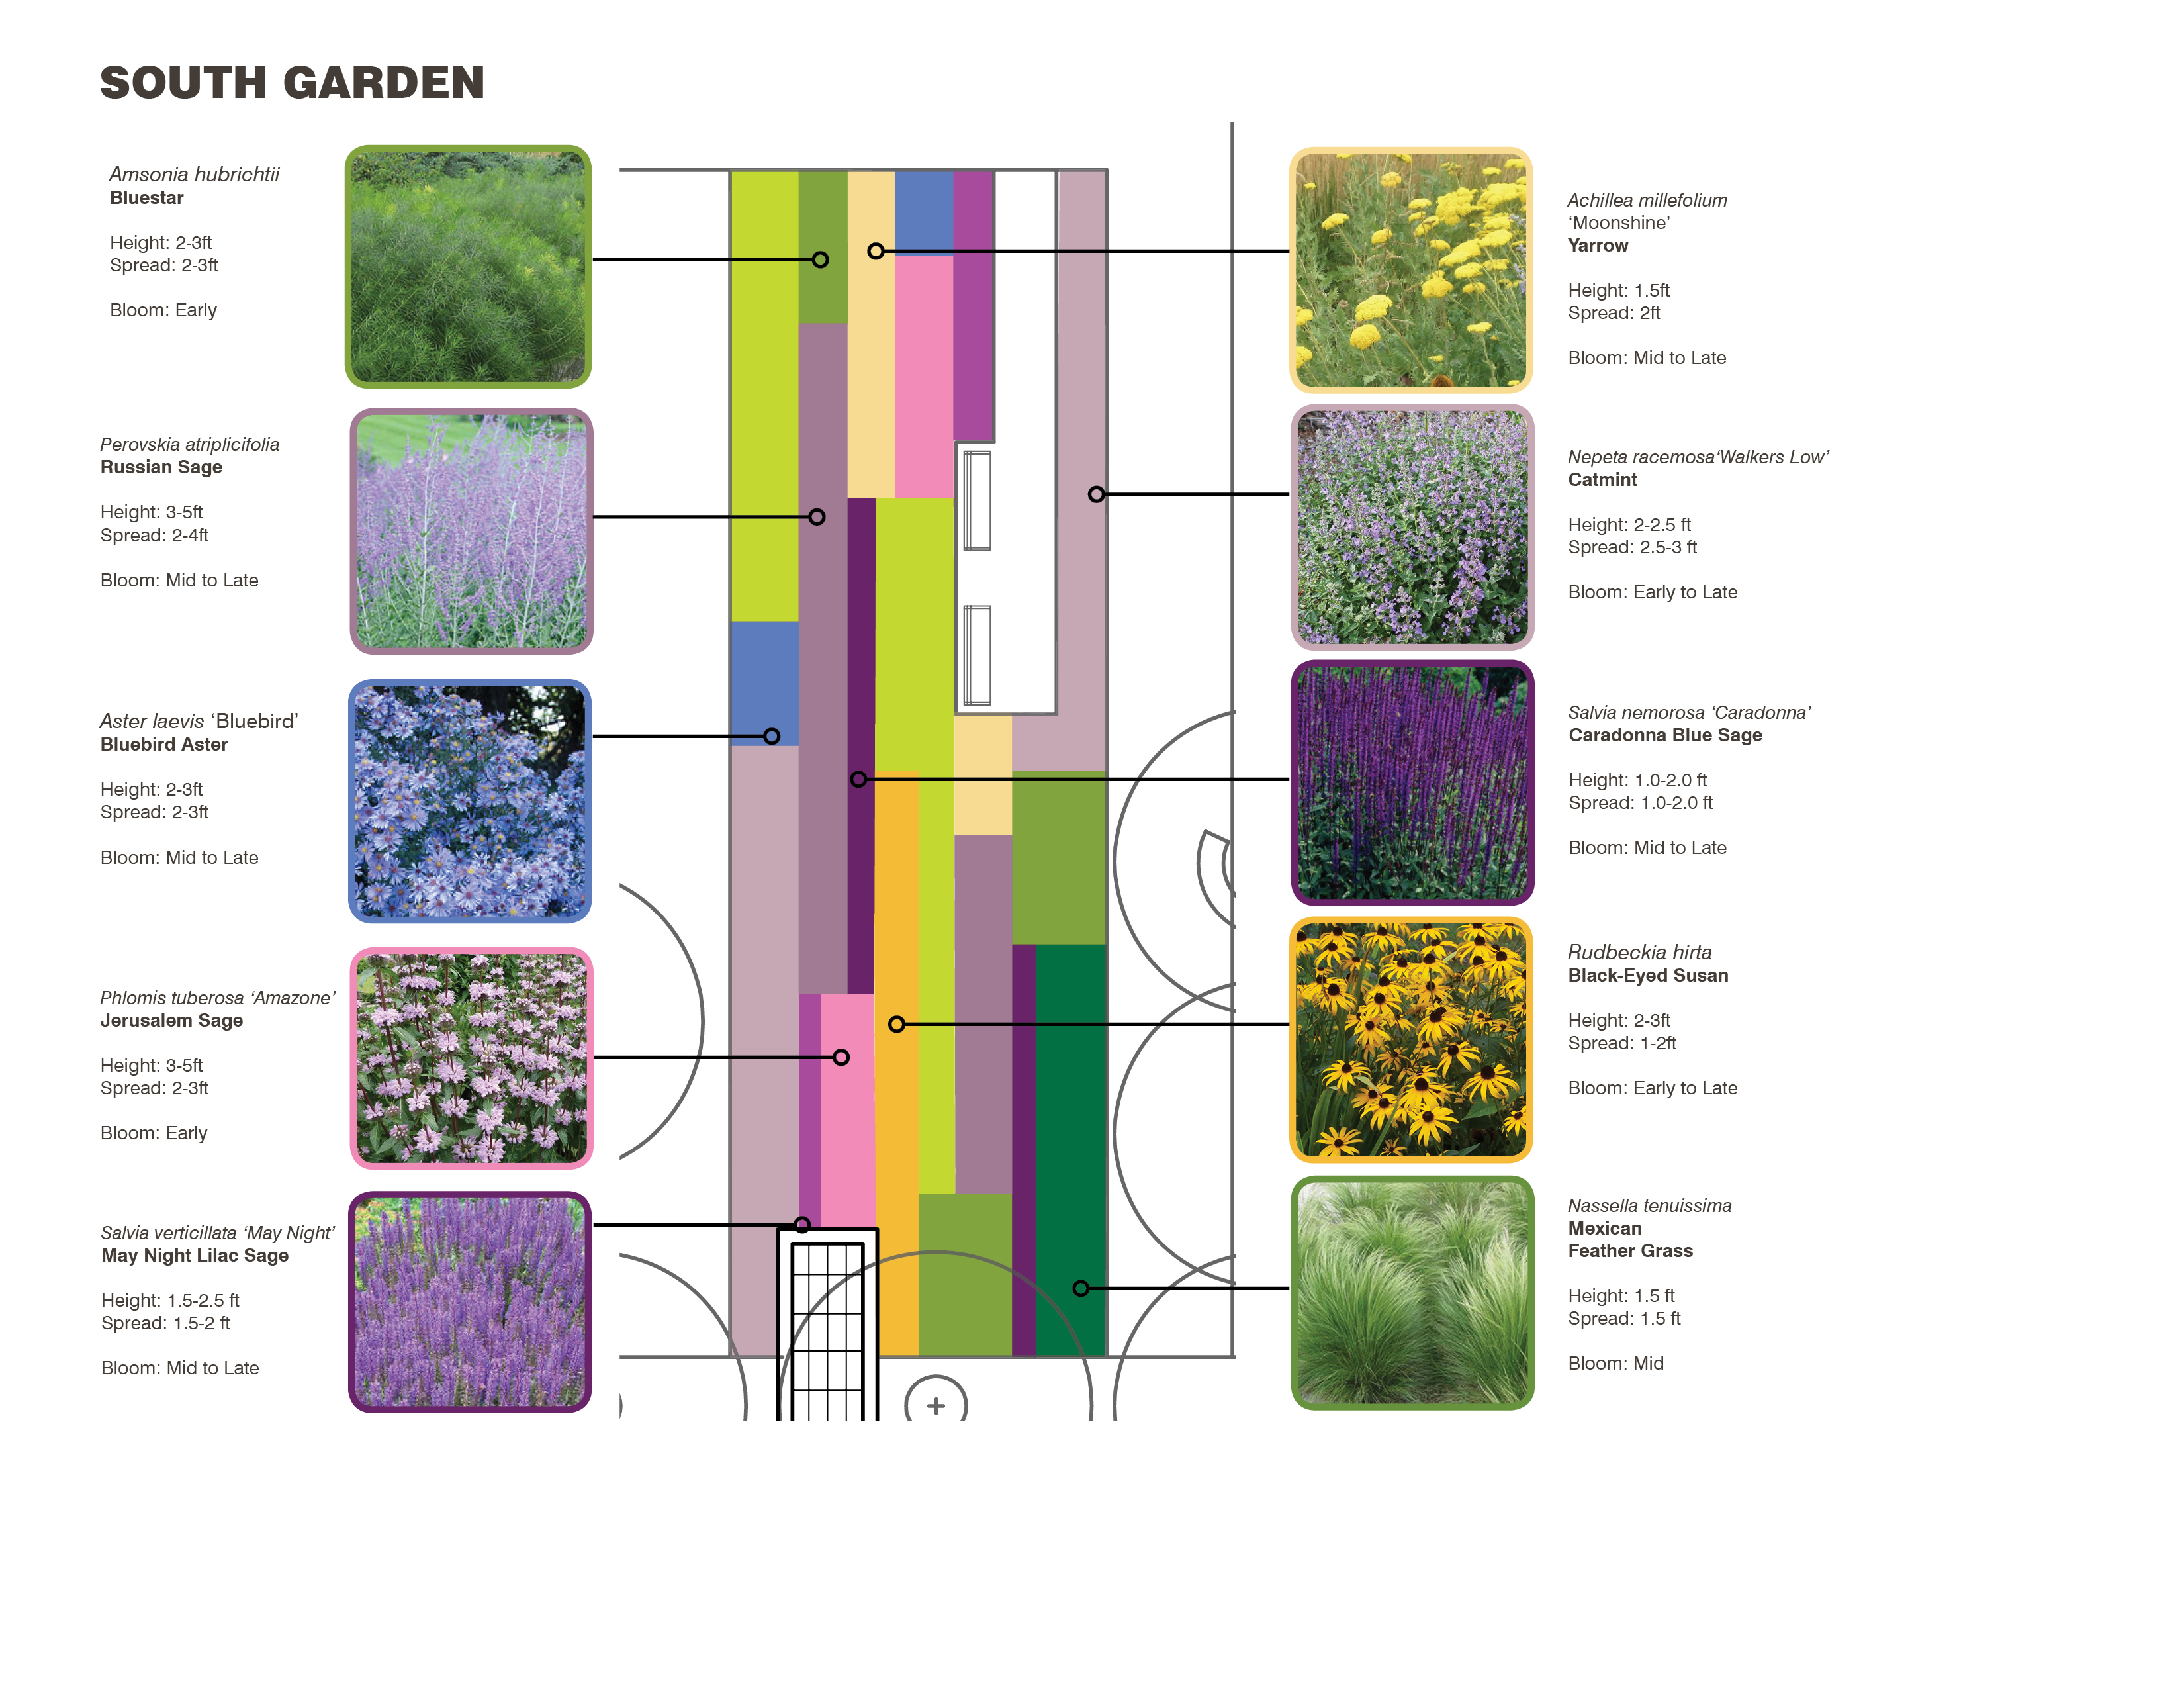 South Garden planting plan of LOVE Park / JFK Plaza, October 2015 | Hargreaves